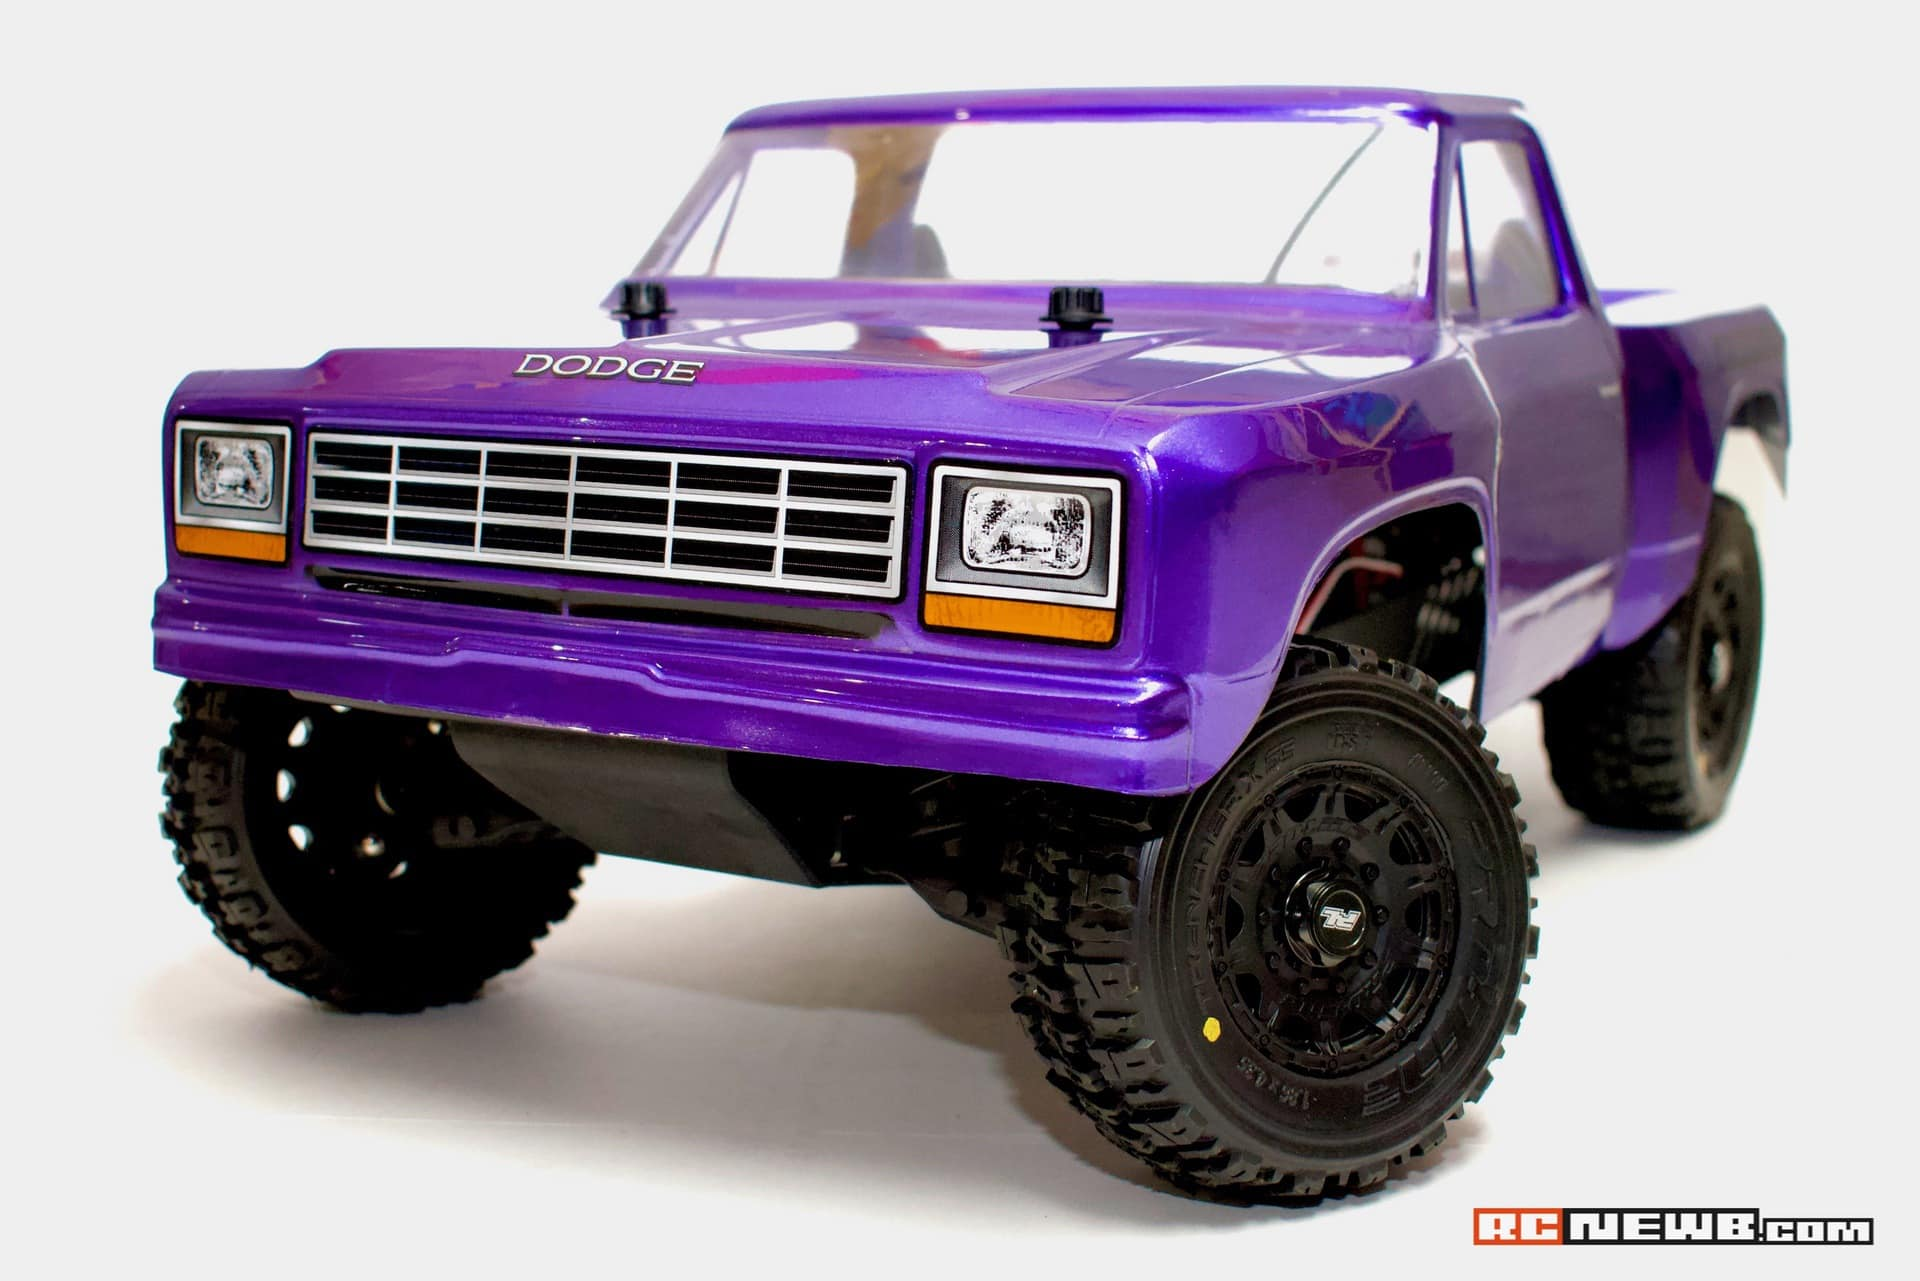 Hands-on with Pro-Line's 1984 Dodge Ram R/C Short Course Truck Body